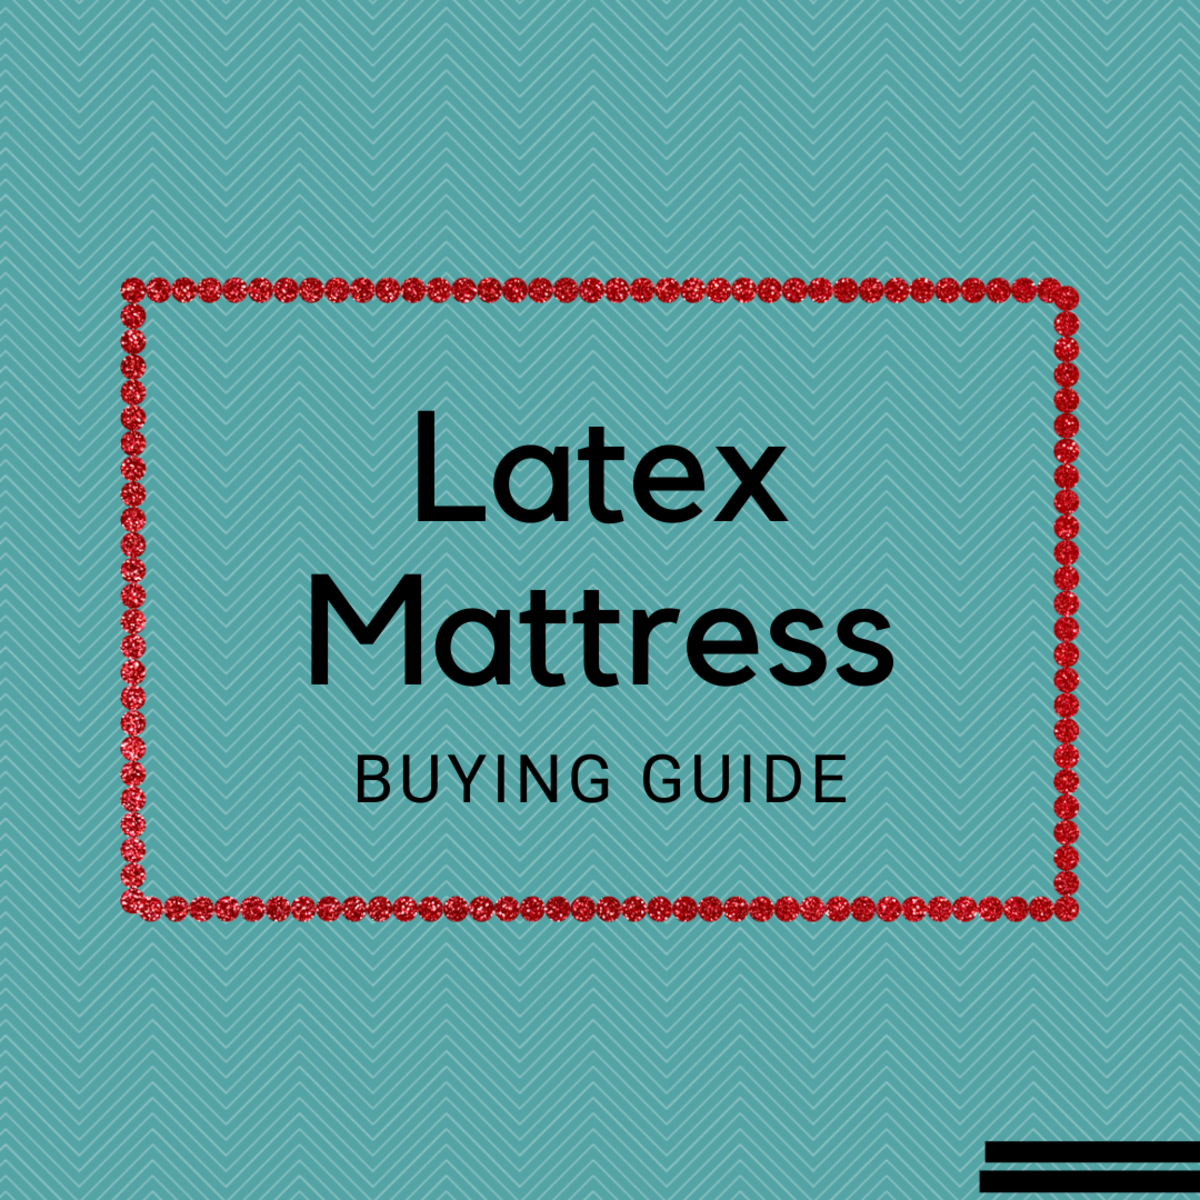 Learn how to decipher the lingo and choose the best mattress for your needs.